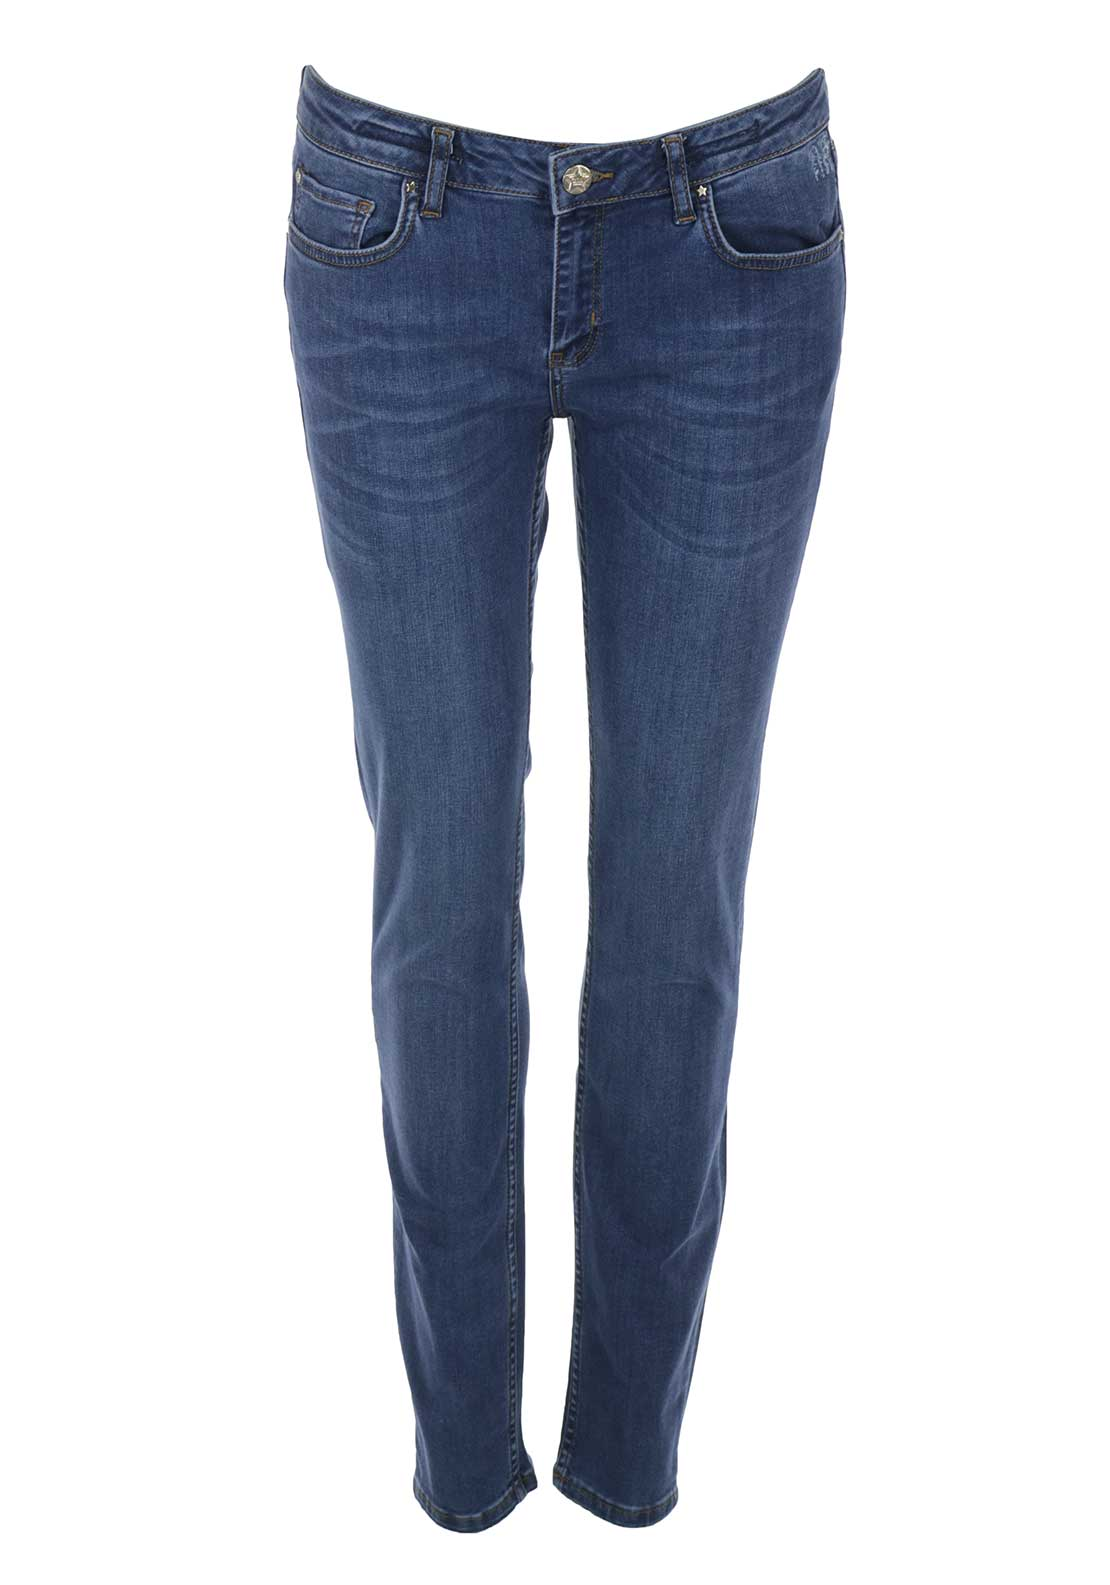 Silvian Heach Slim Leg Jeans, Blue Denim Wash